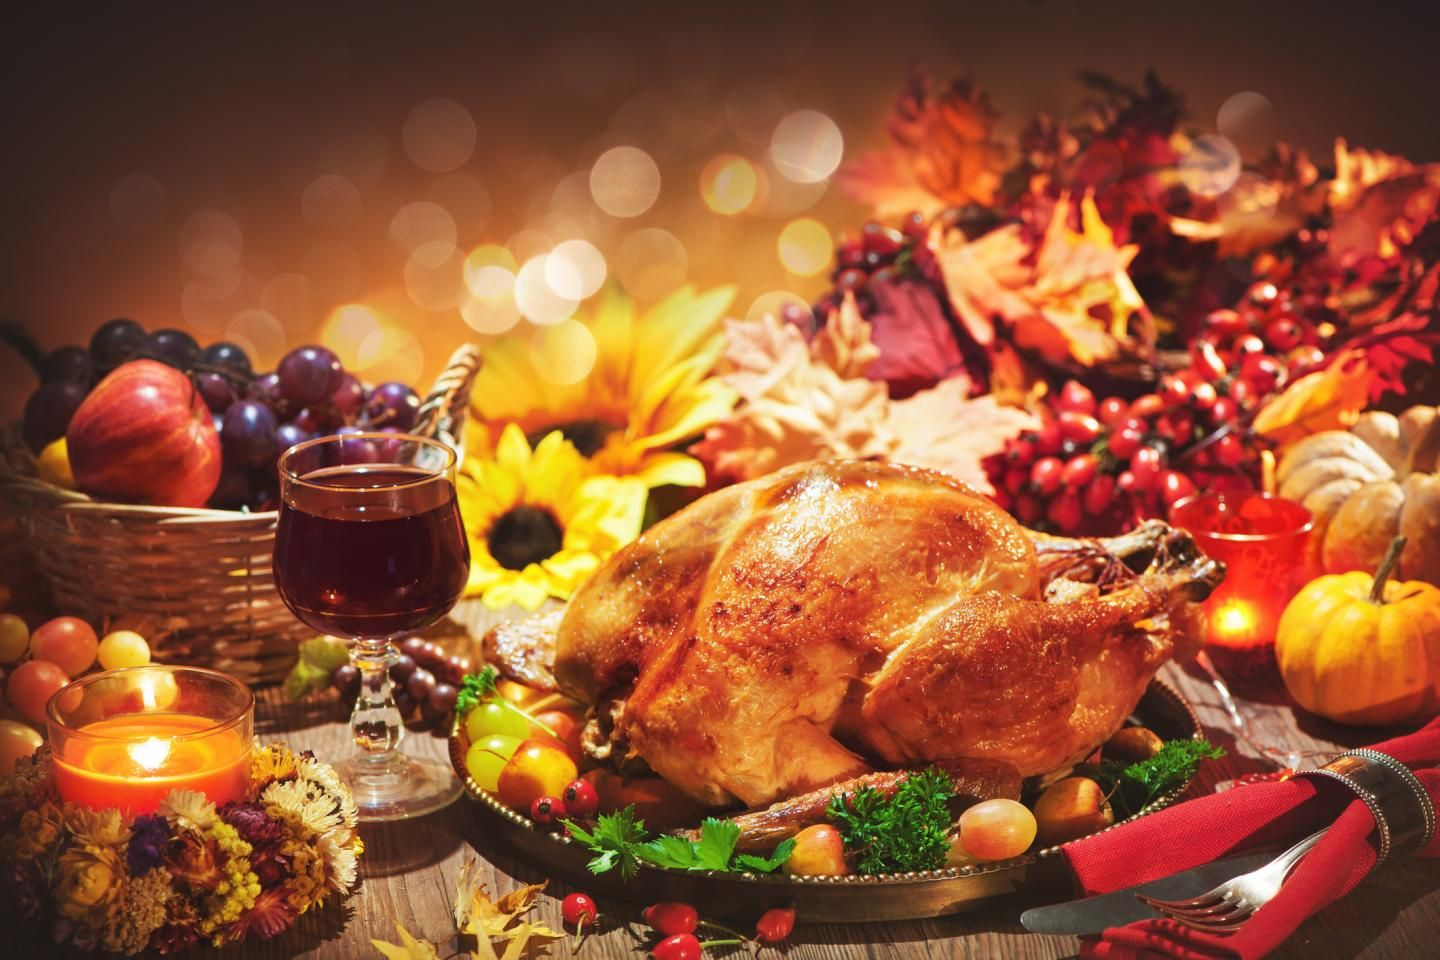 What restaurants are open on Thanksgiving 2018? IHOP